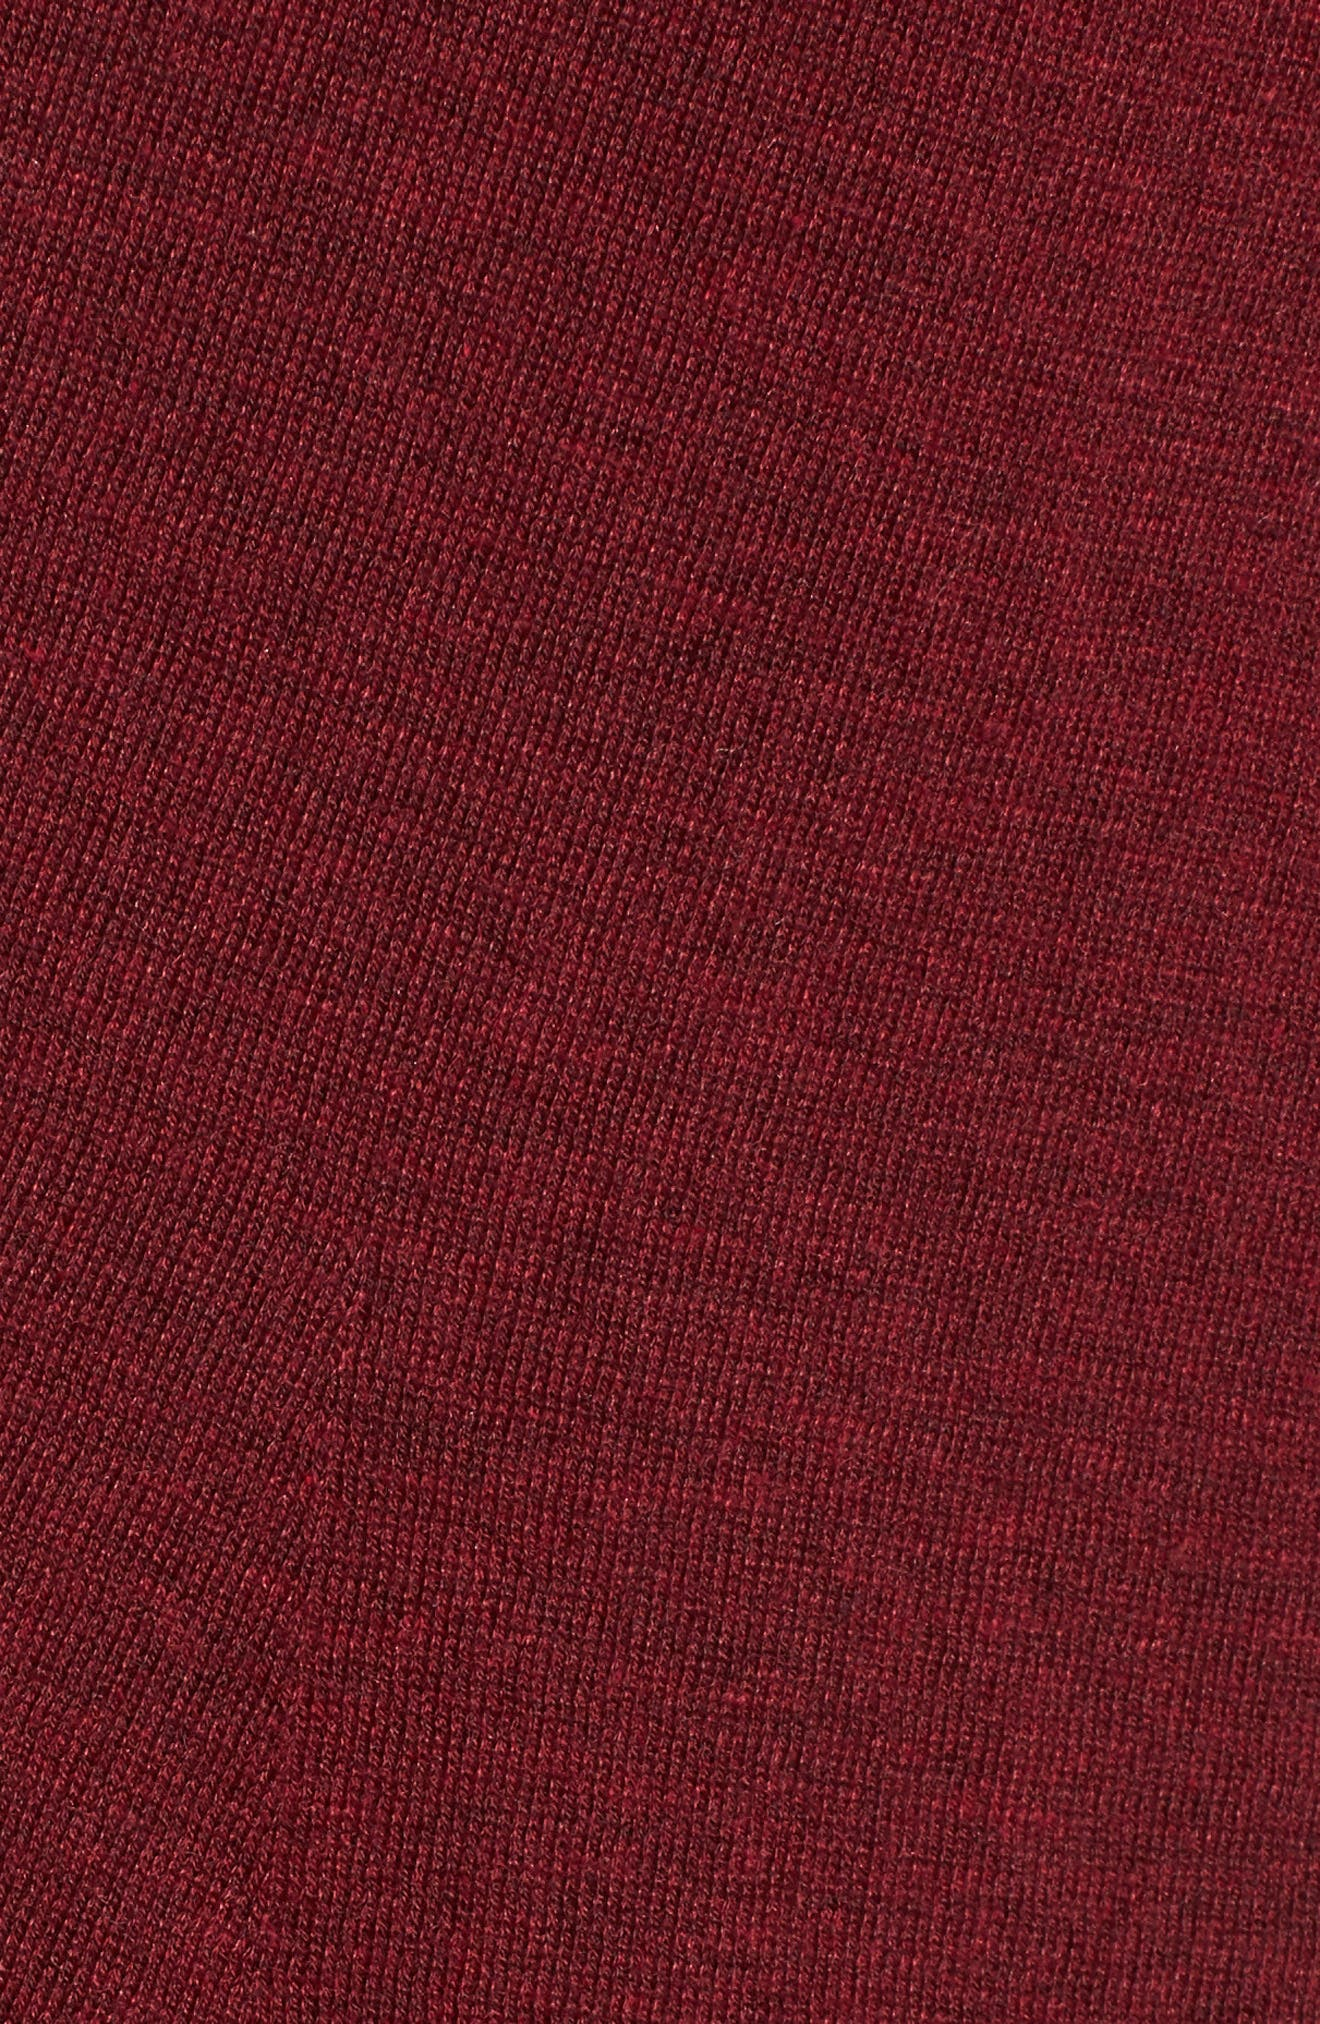 Shaped Tencel<sup>®</sup> Lyocell Blend Cardigan,                             Alternate thumbnail 5, color,                             Claret